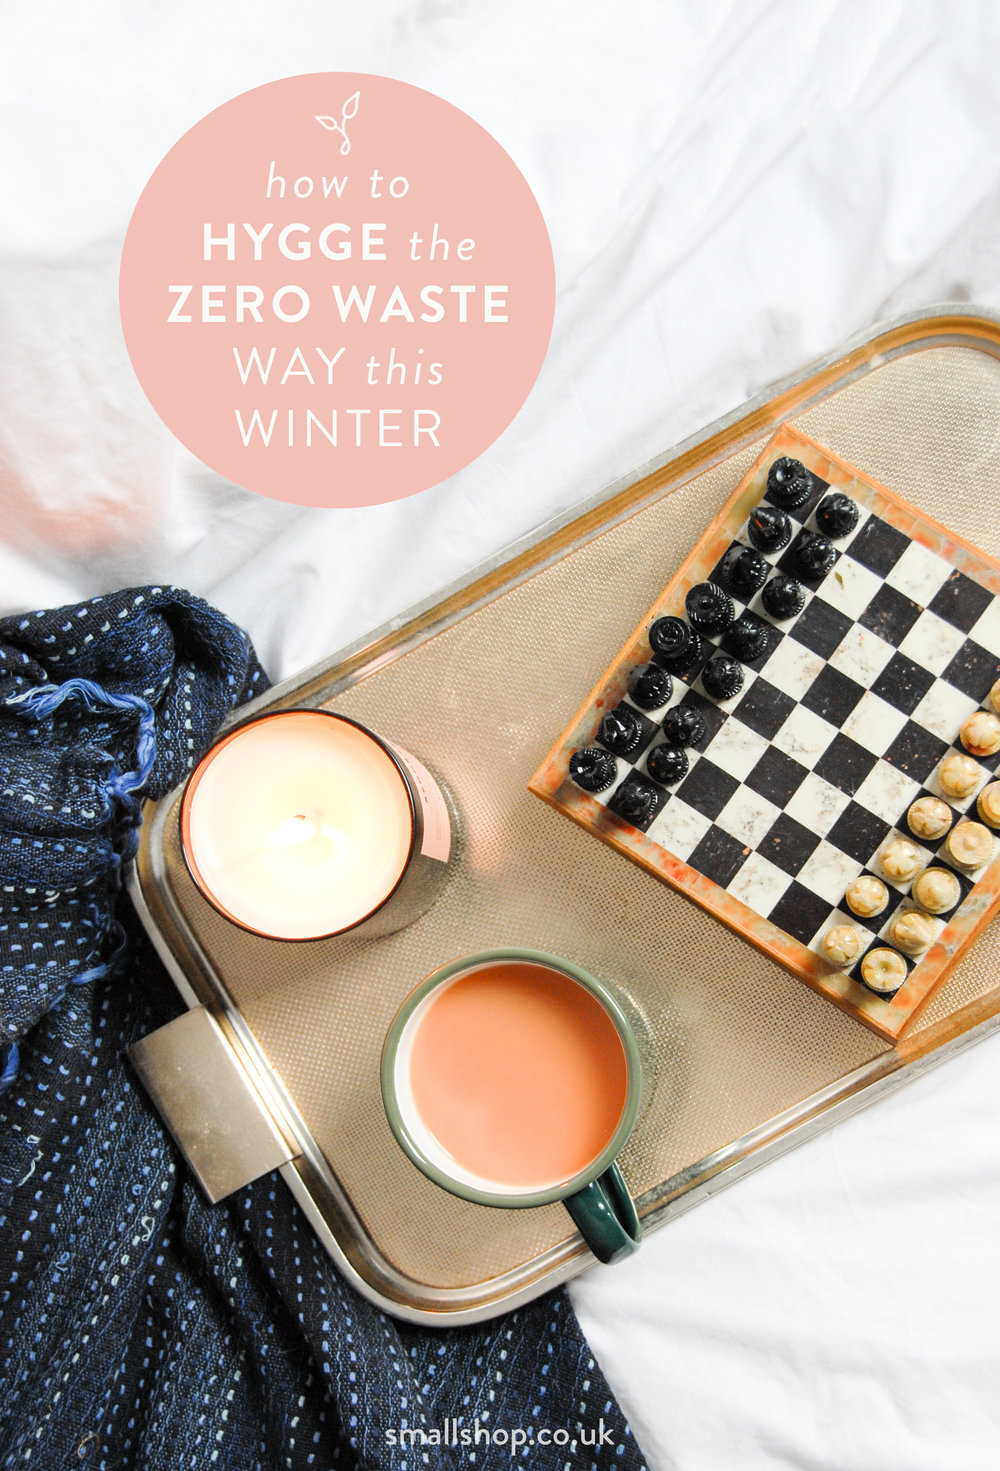 How to hygge the zero waste way this winter